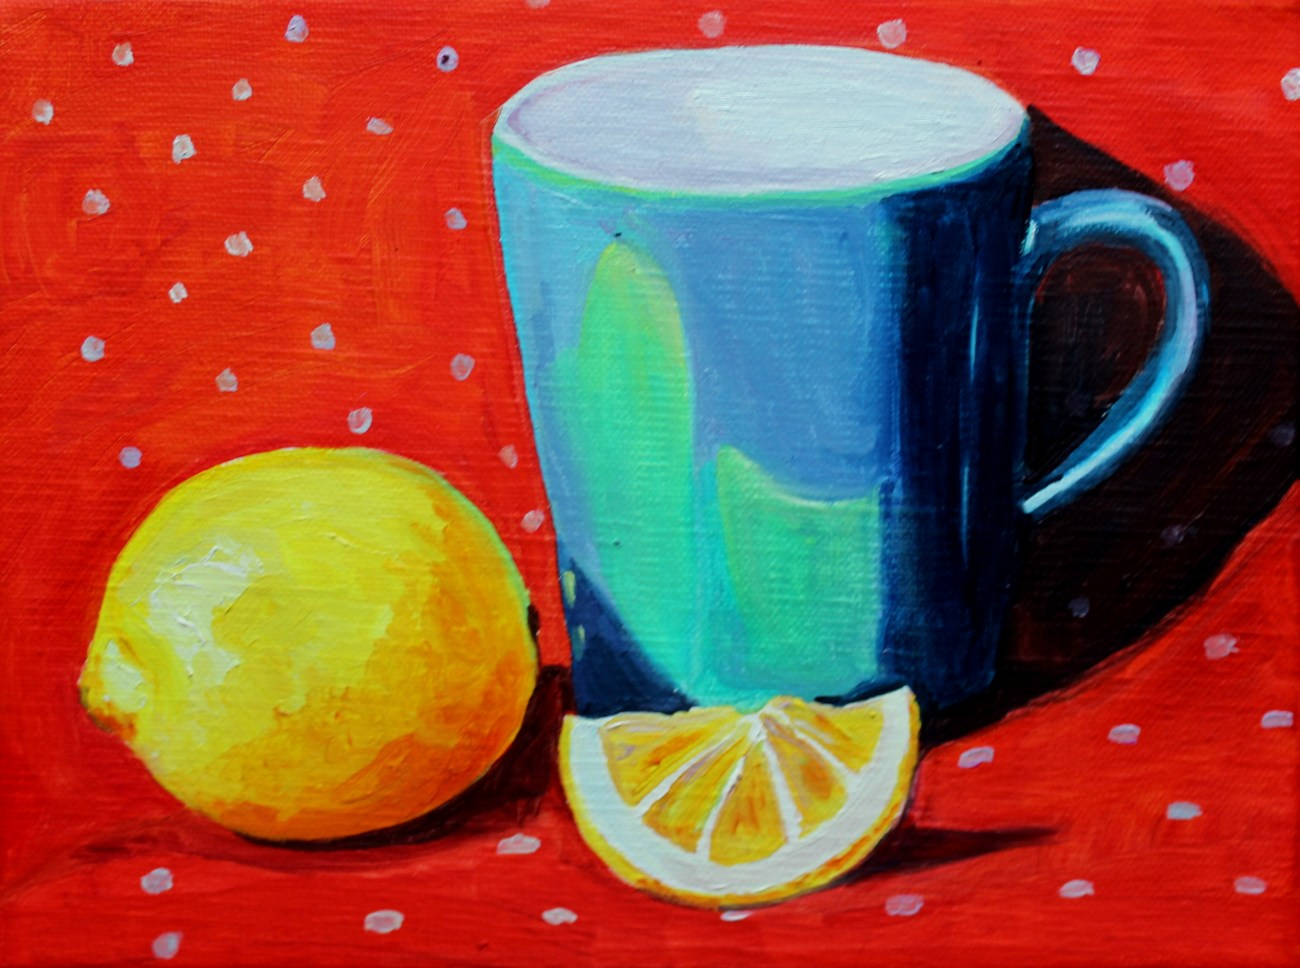 Blue cup with Lemons